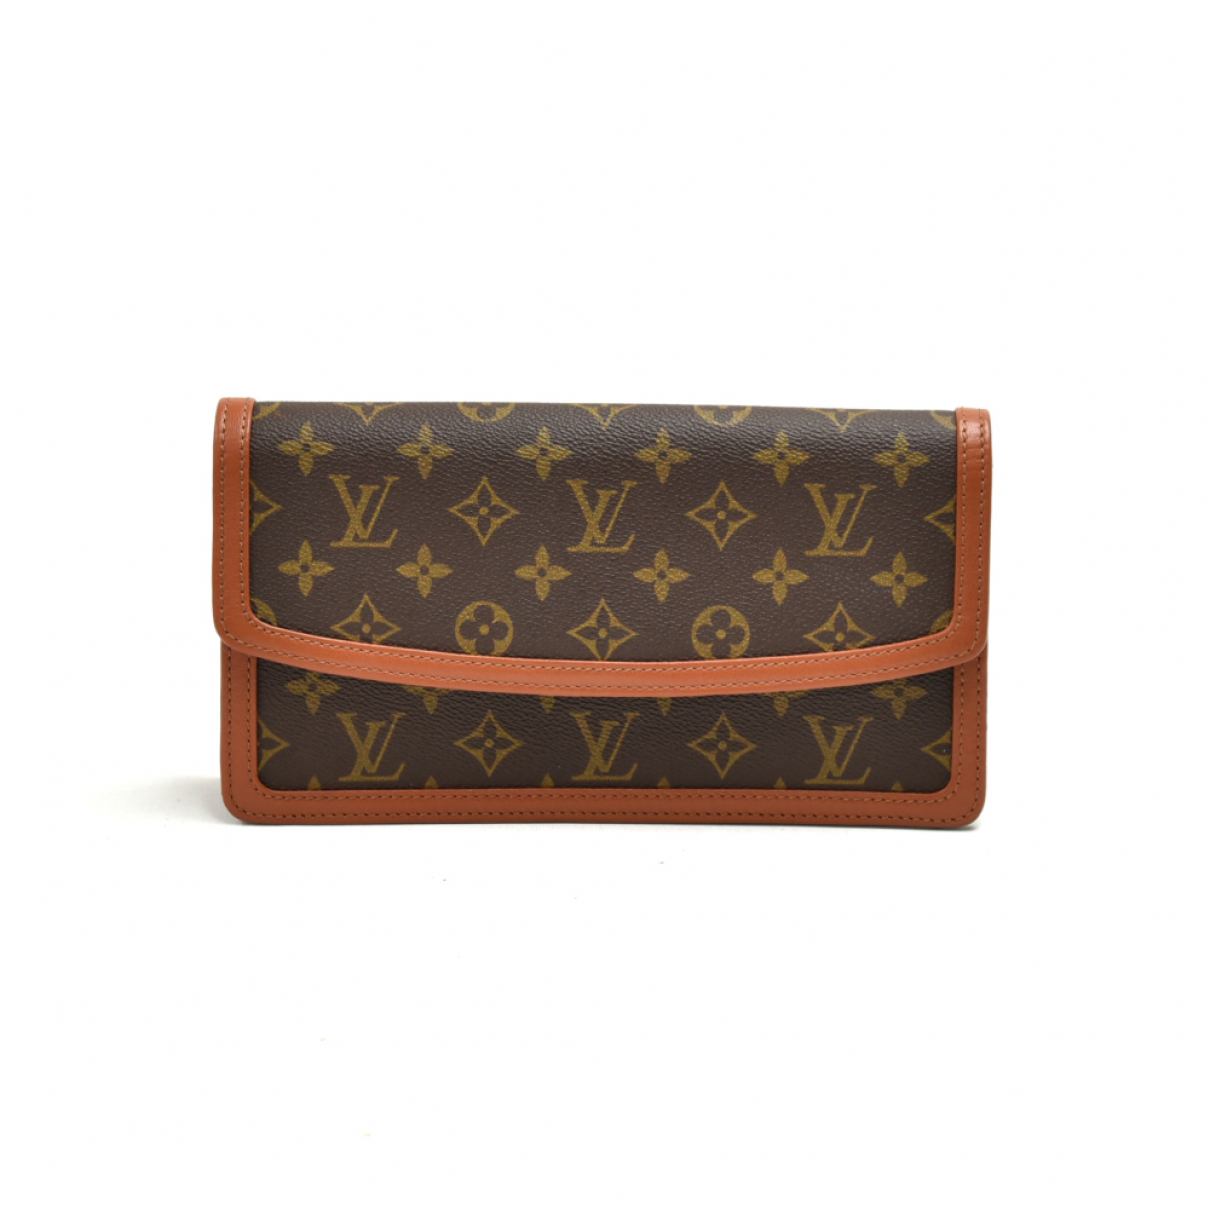 Louis Vuitton N Brown Cloth Clutch bag for Women N